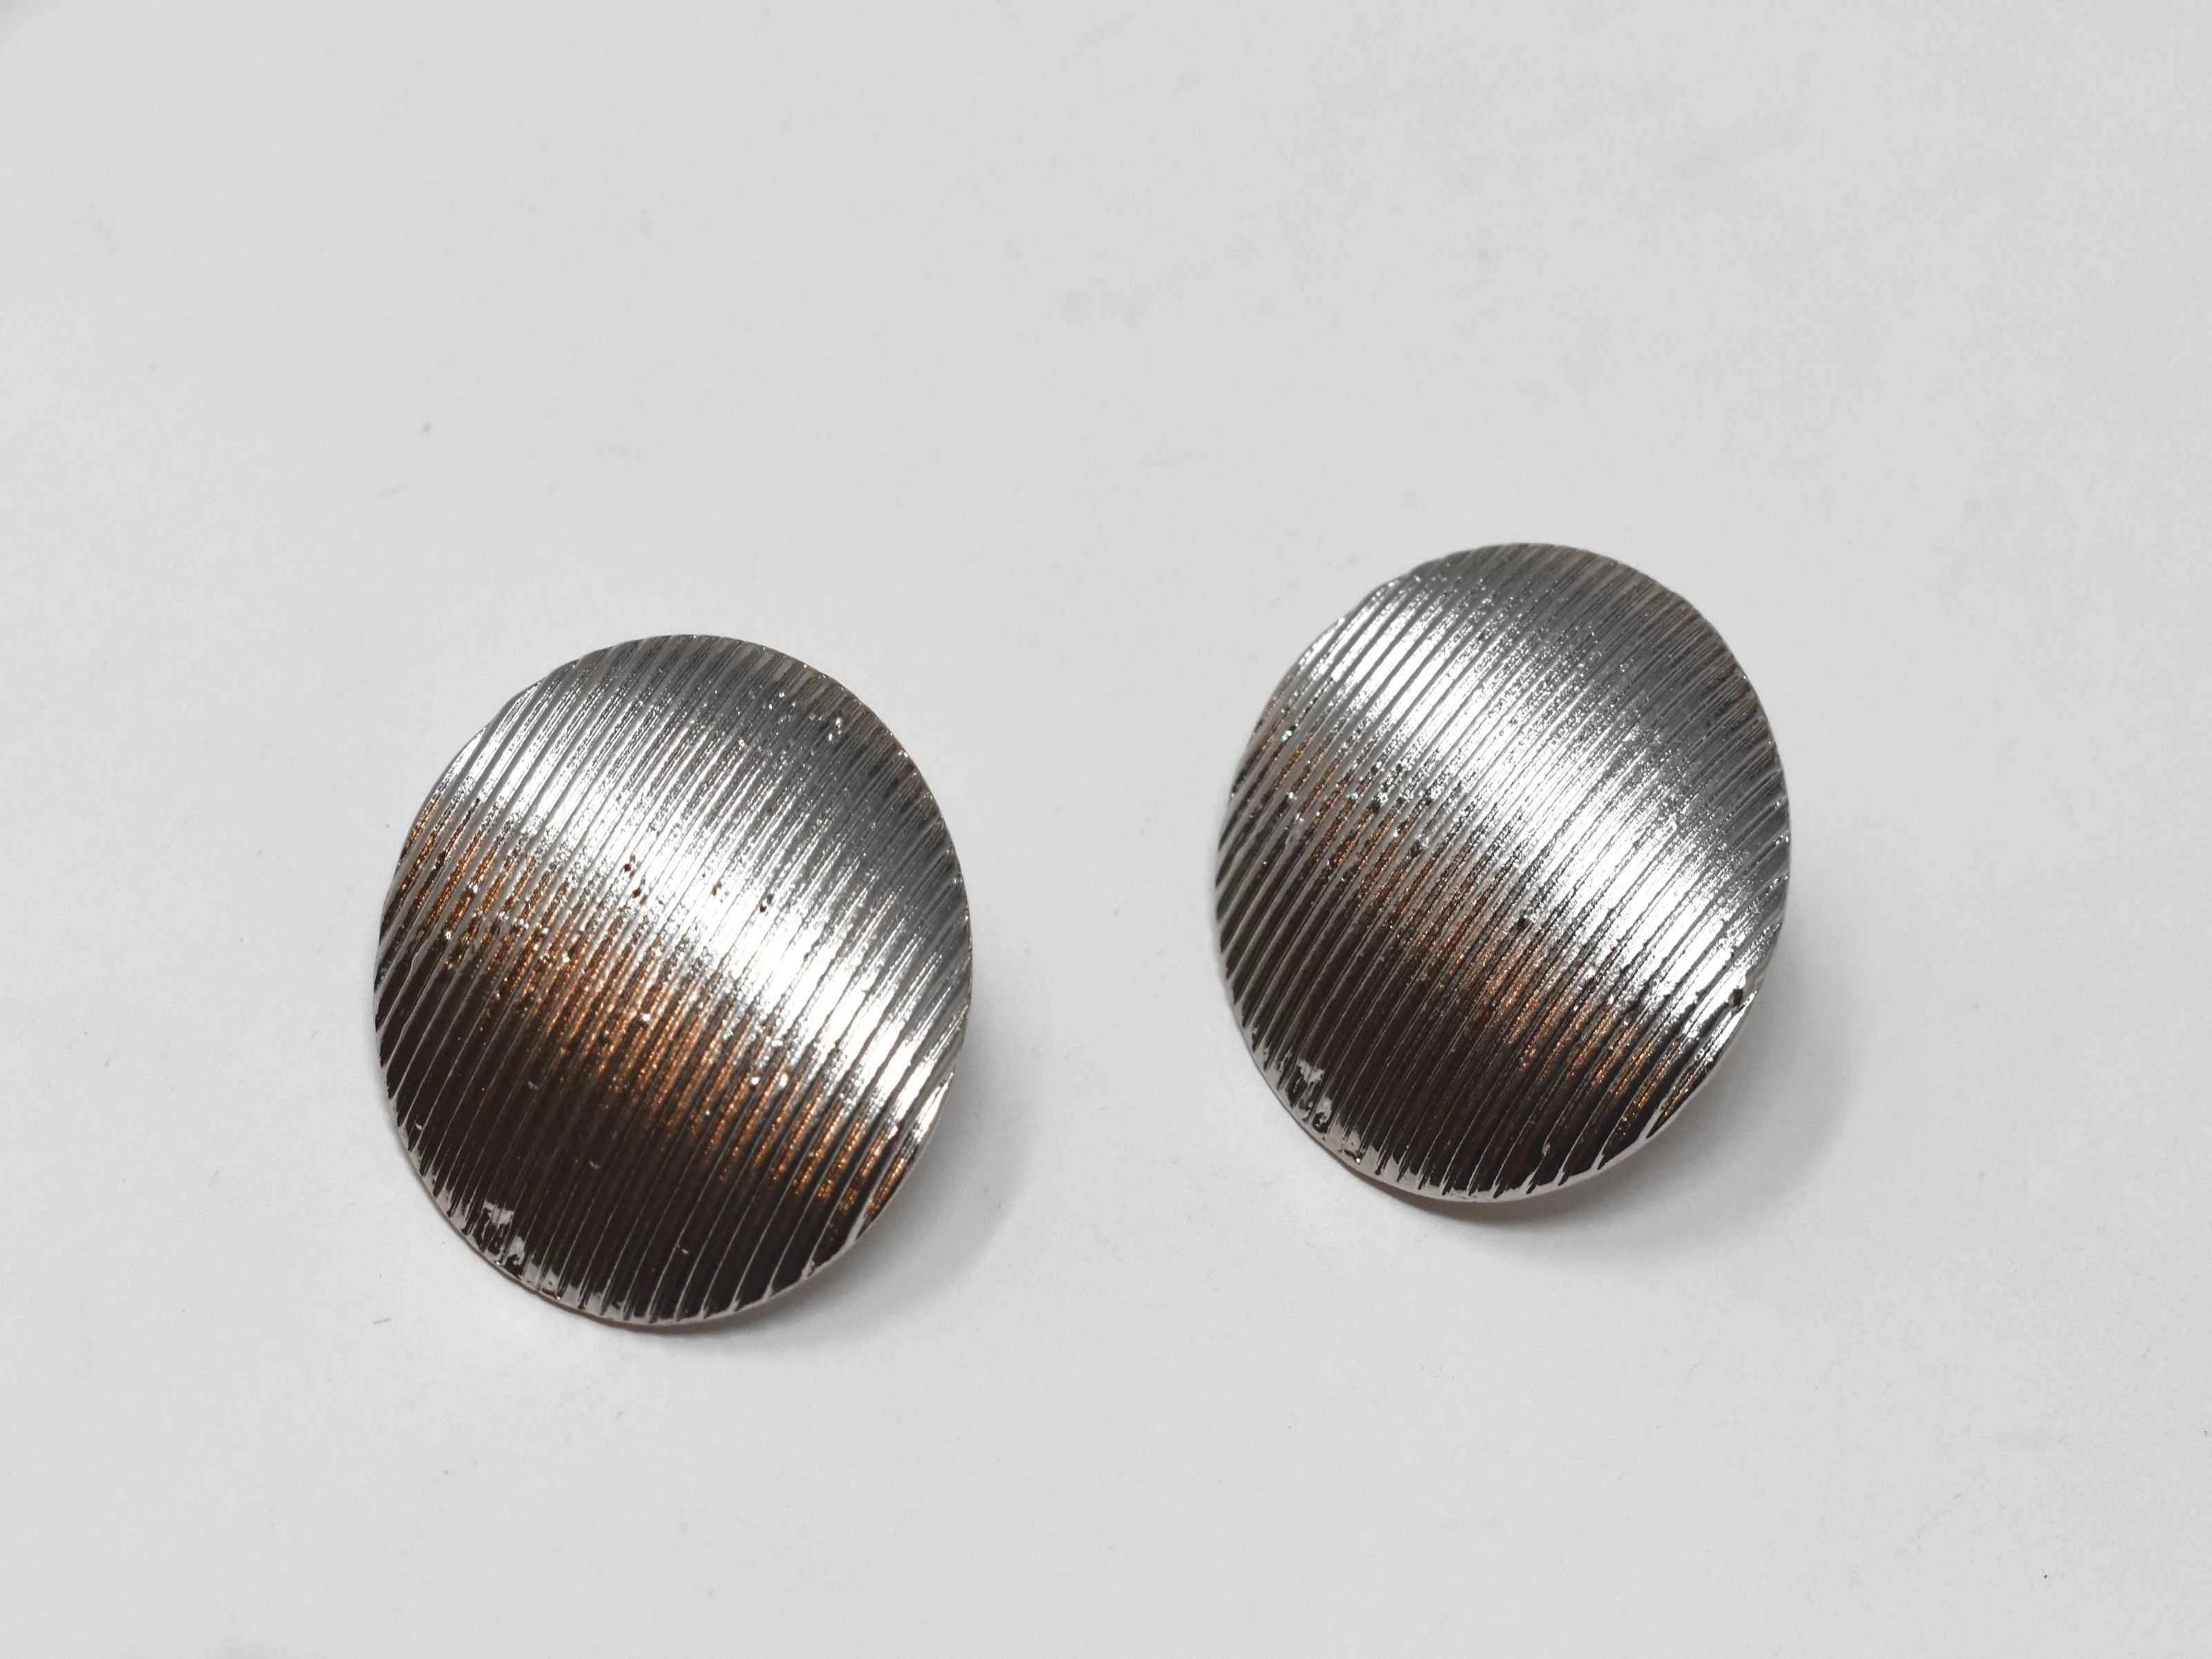 Our Dahli Silver earrings are good for any occasion. They are silver medium sized knob earrings with a pinstripe design and a pushback clasp.